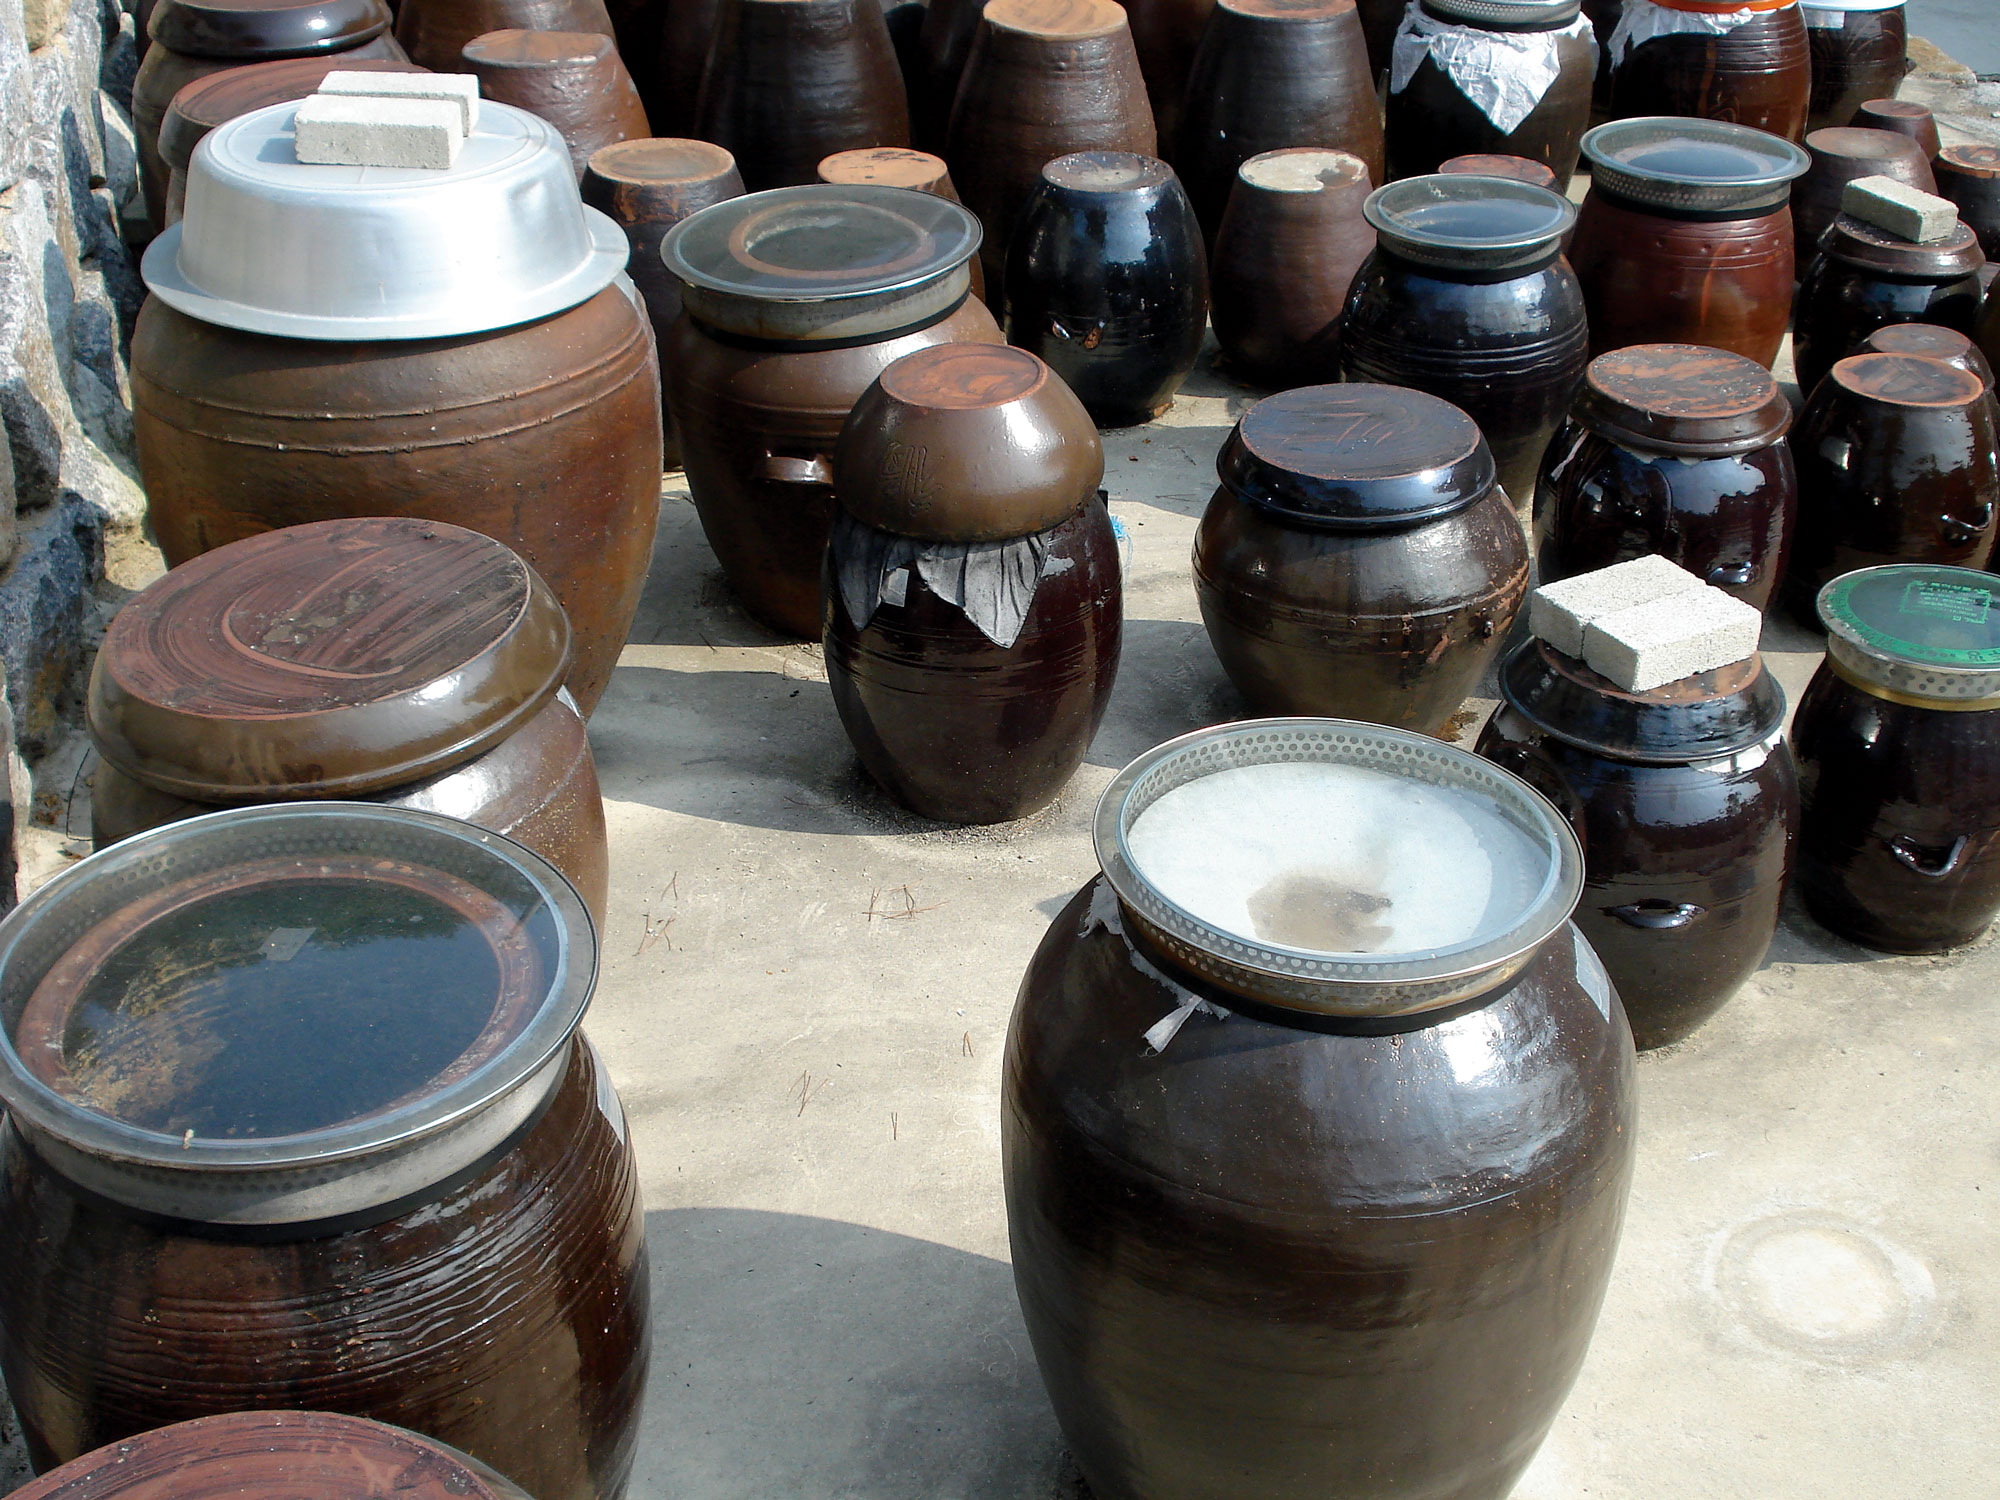 Ceramic jugs of various sizes fermenting kimchi